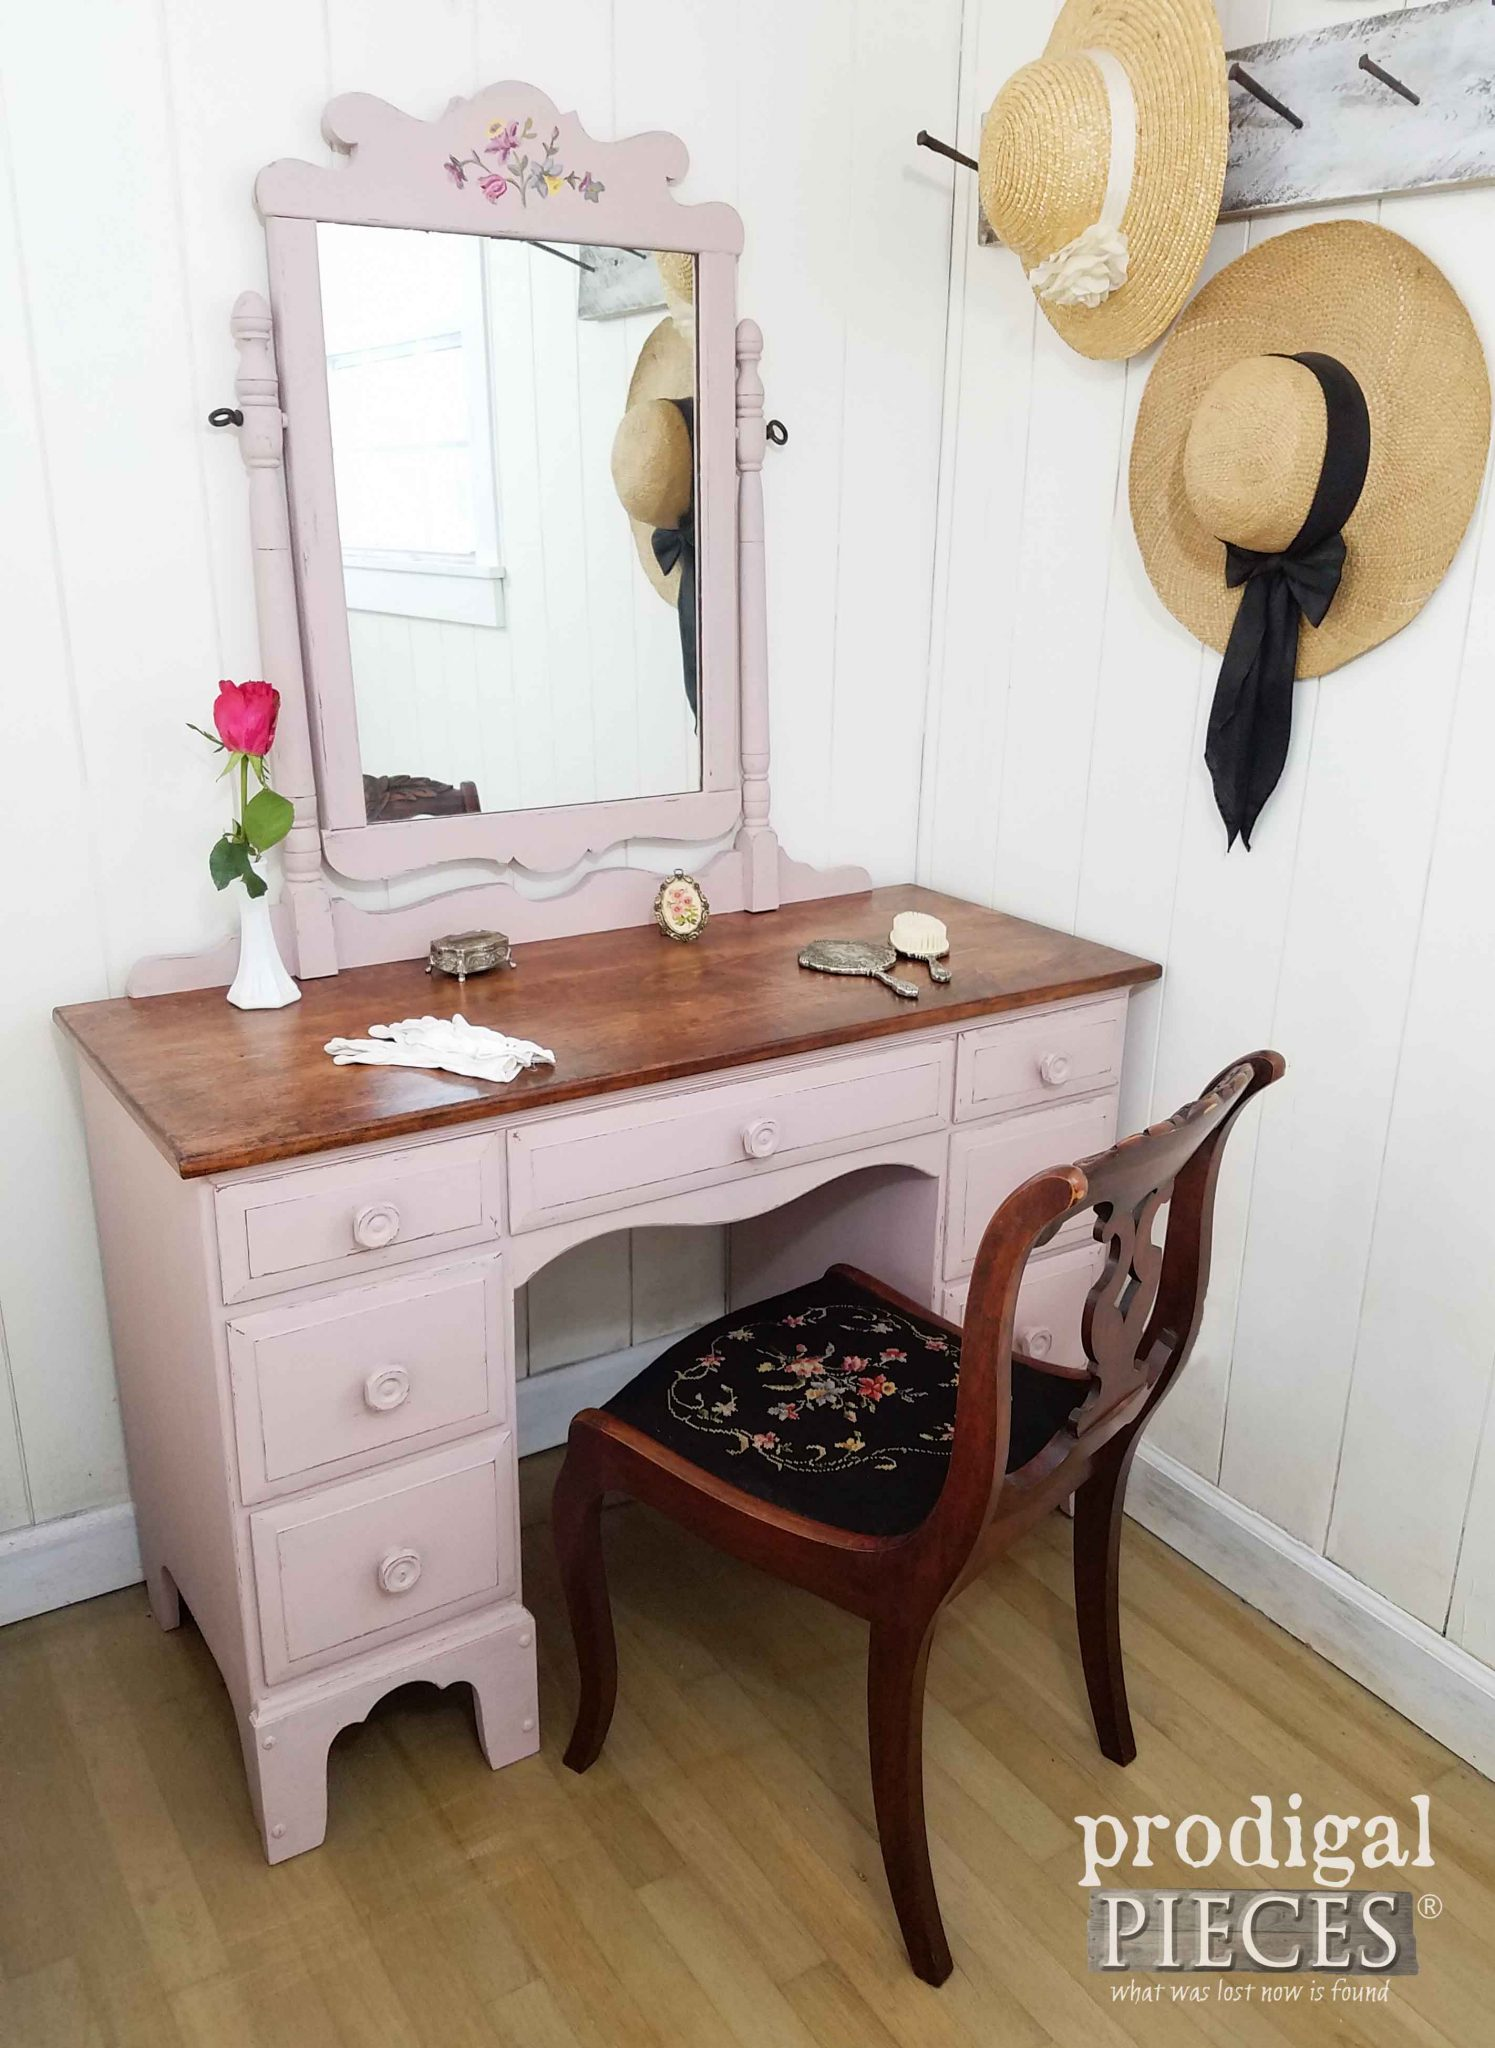 Farmhouse Chic Vintage Vanity Makeover by Prodigal Pieces | prodigalpieces.com